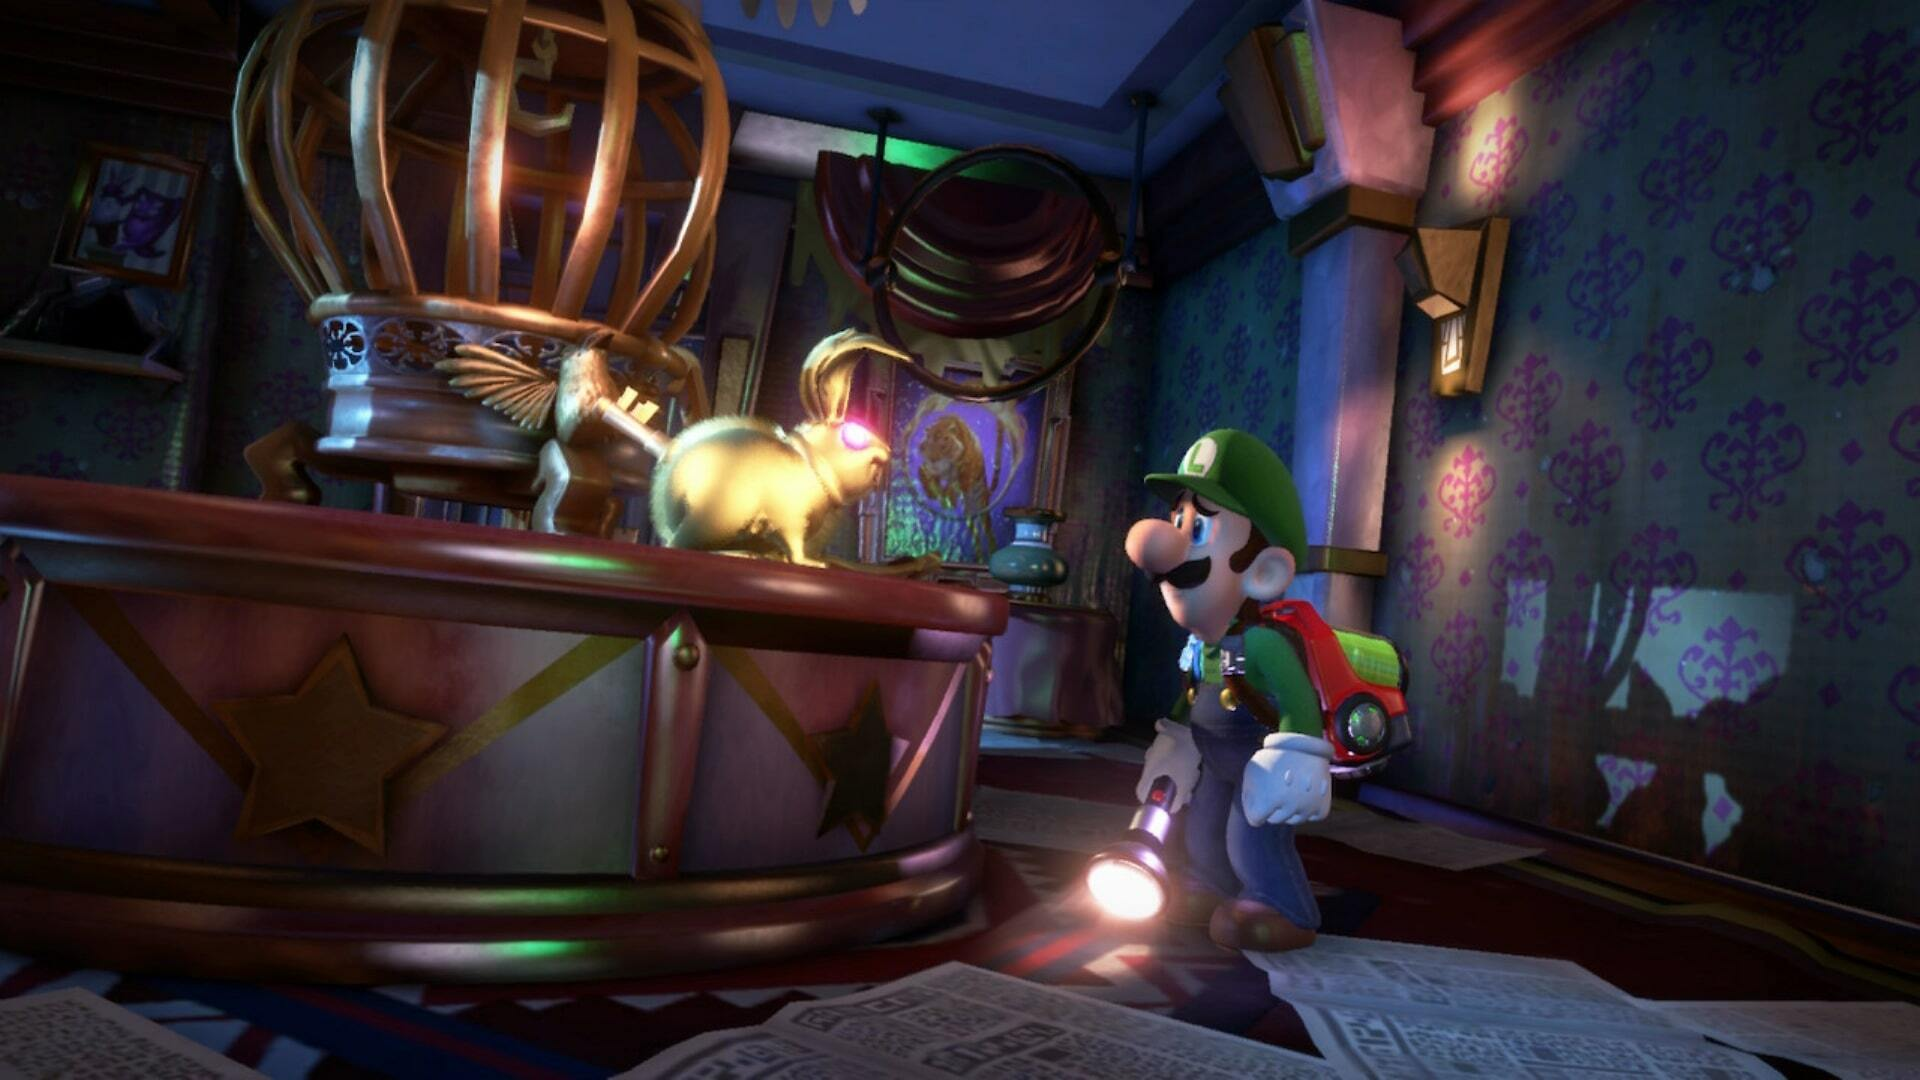 Luigi's Mansion 3: How to Get the Gold Key From the Gold Rabbit